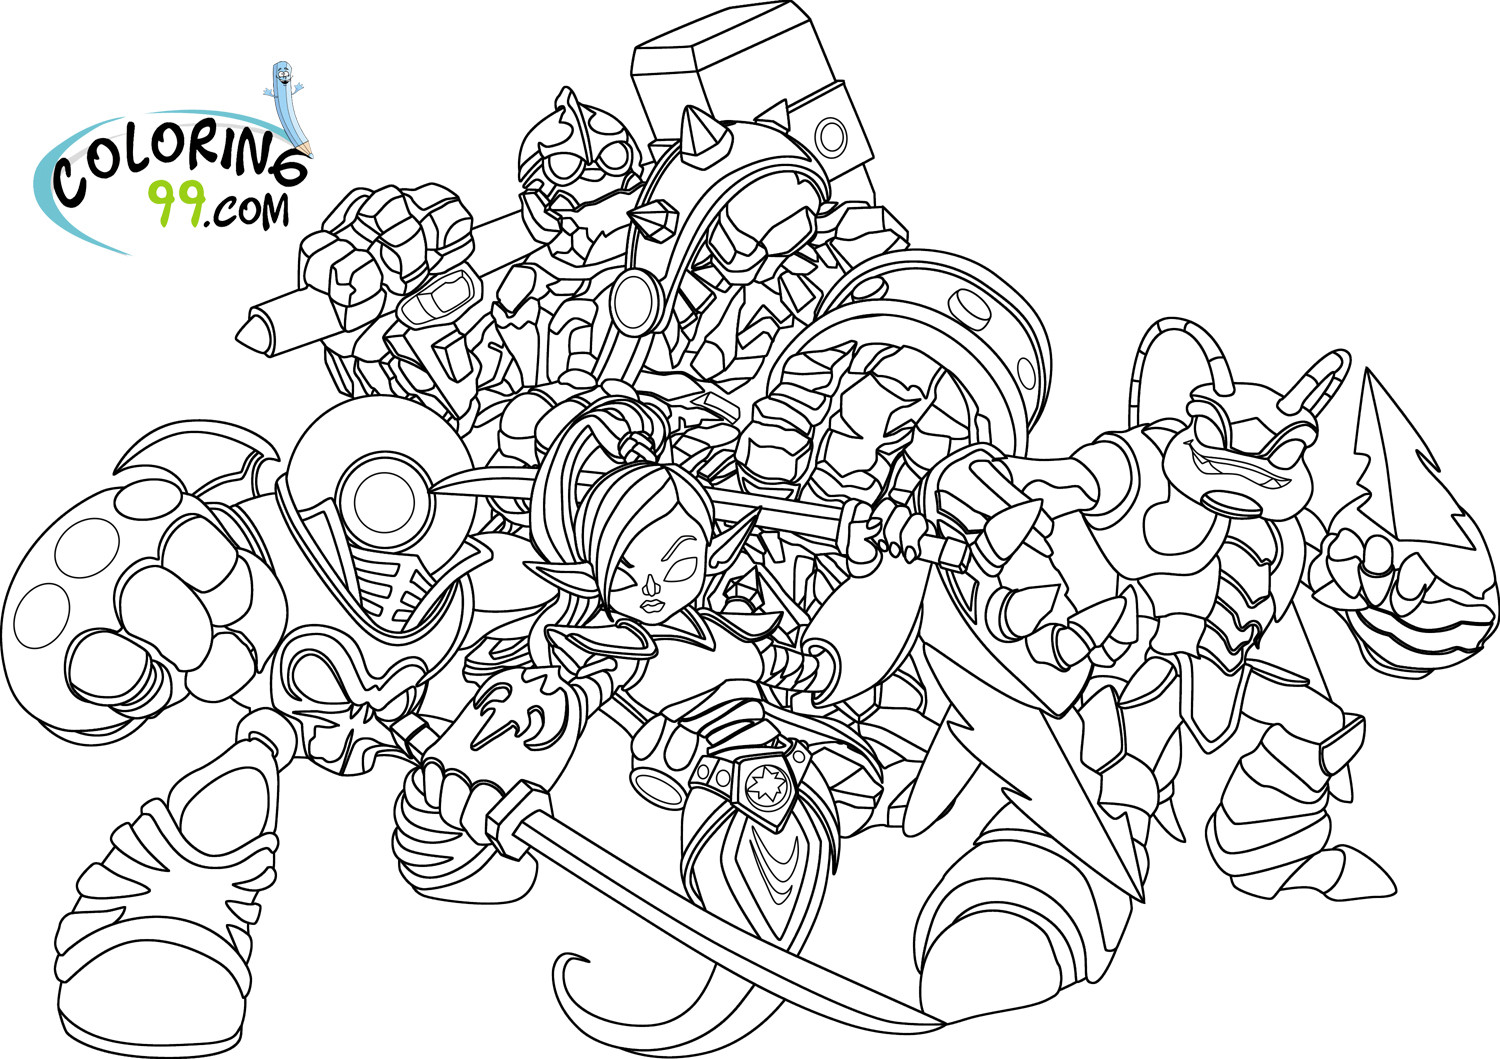 Best ideas about Skylanders Giants Printable Coloring Pages . Save or Pin Skylanders Giants Coloring Pages Now.